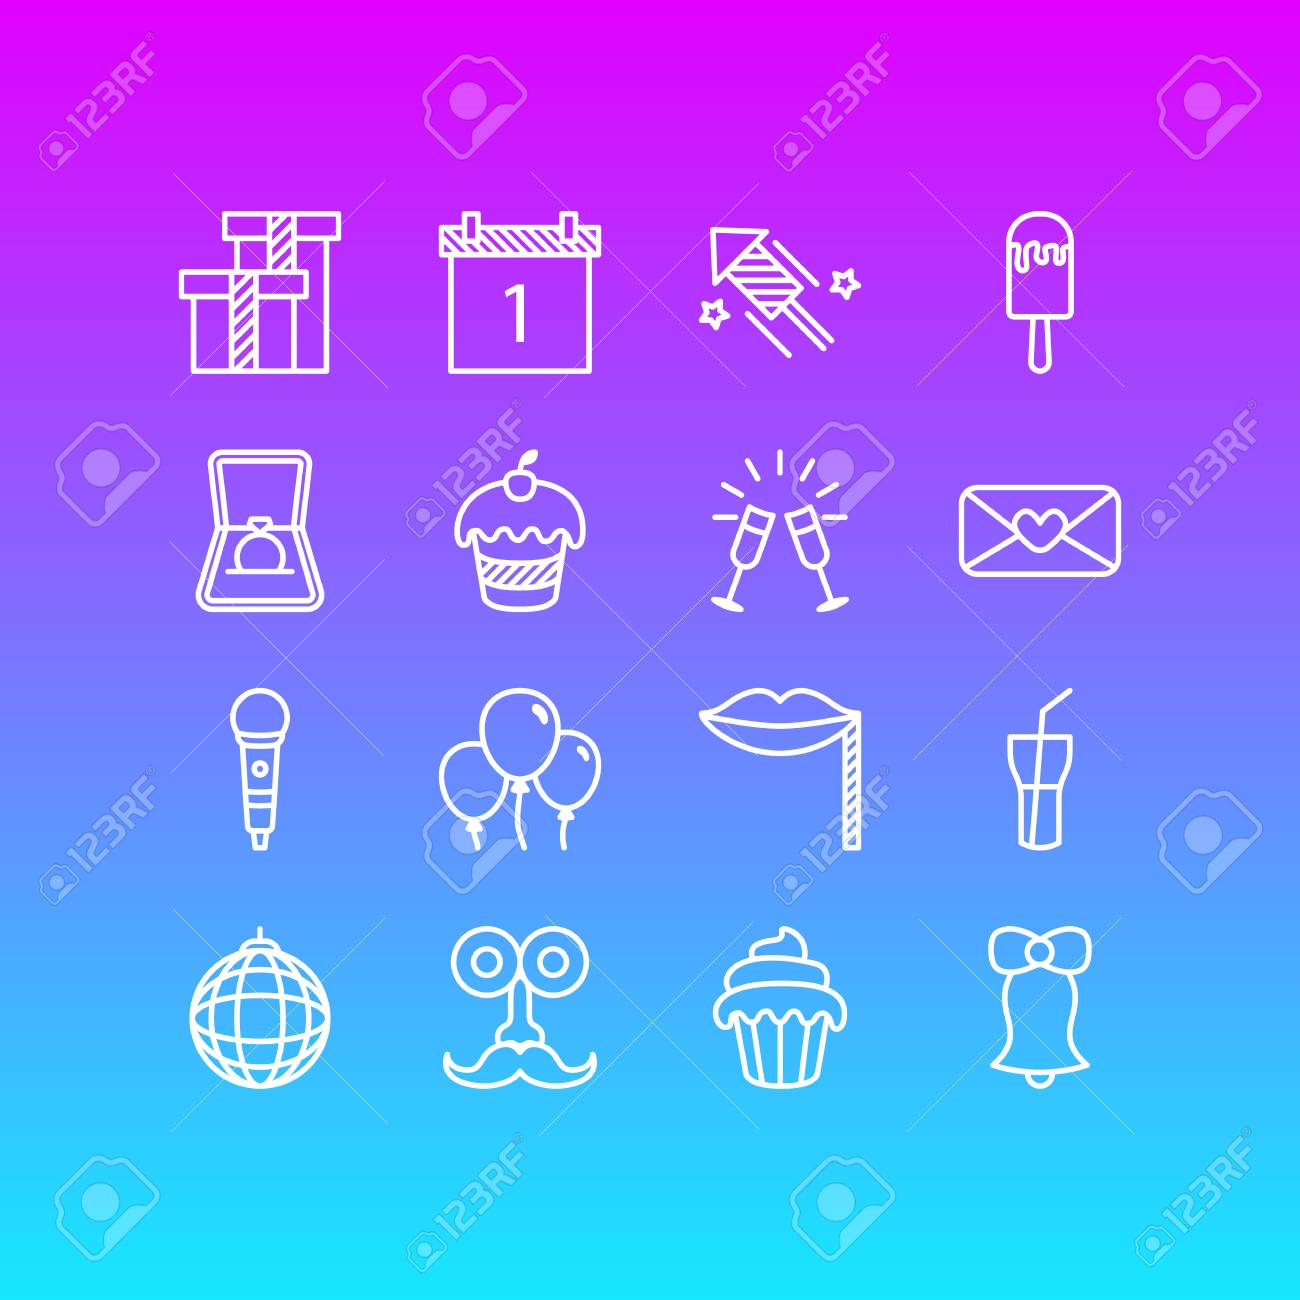 Editable Pack Of Soft Drink, Cupcake, Goblet And Other Elements. Vector Illustration Of 16 Party Icons. - 84814089